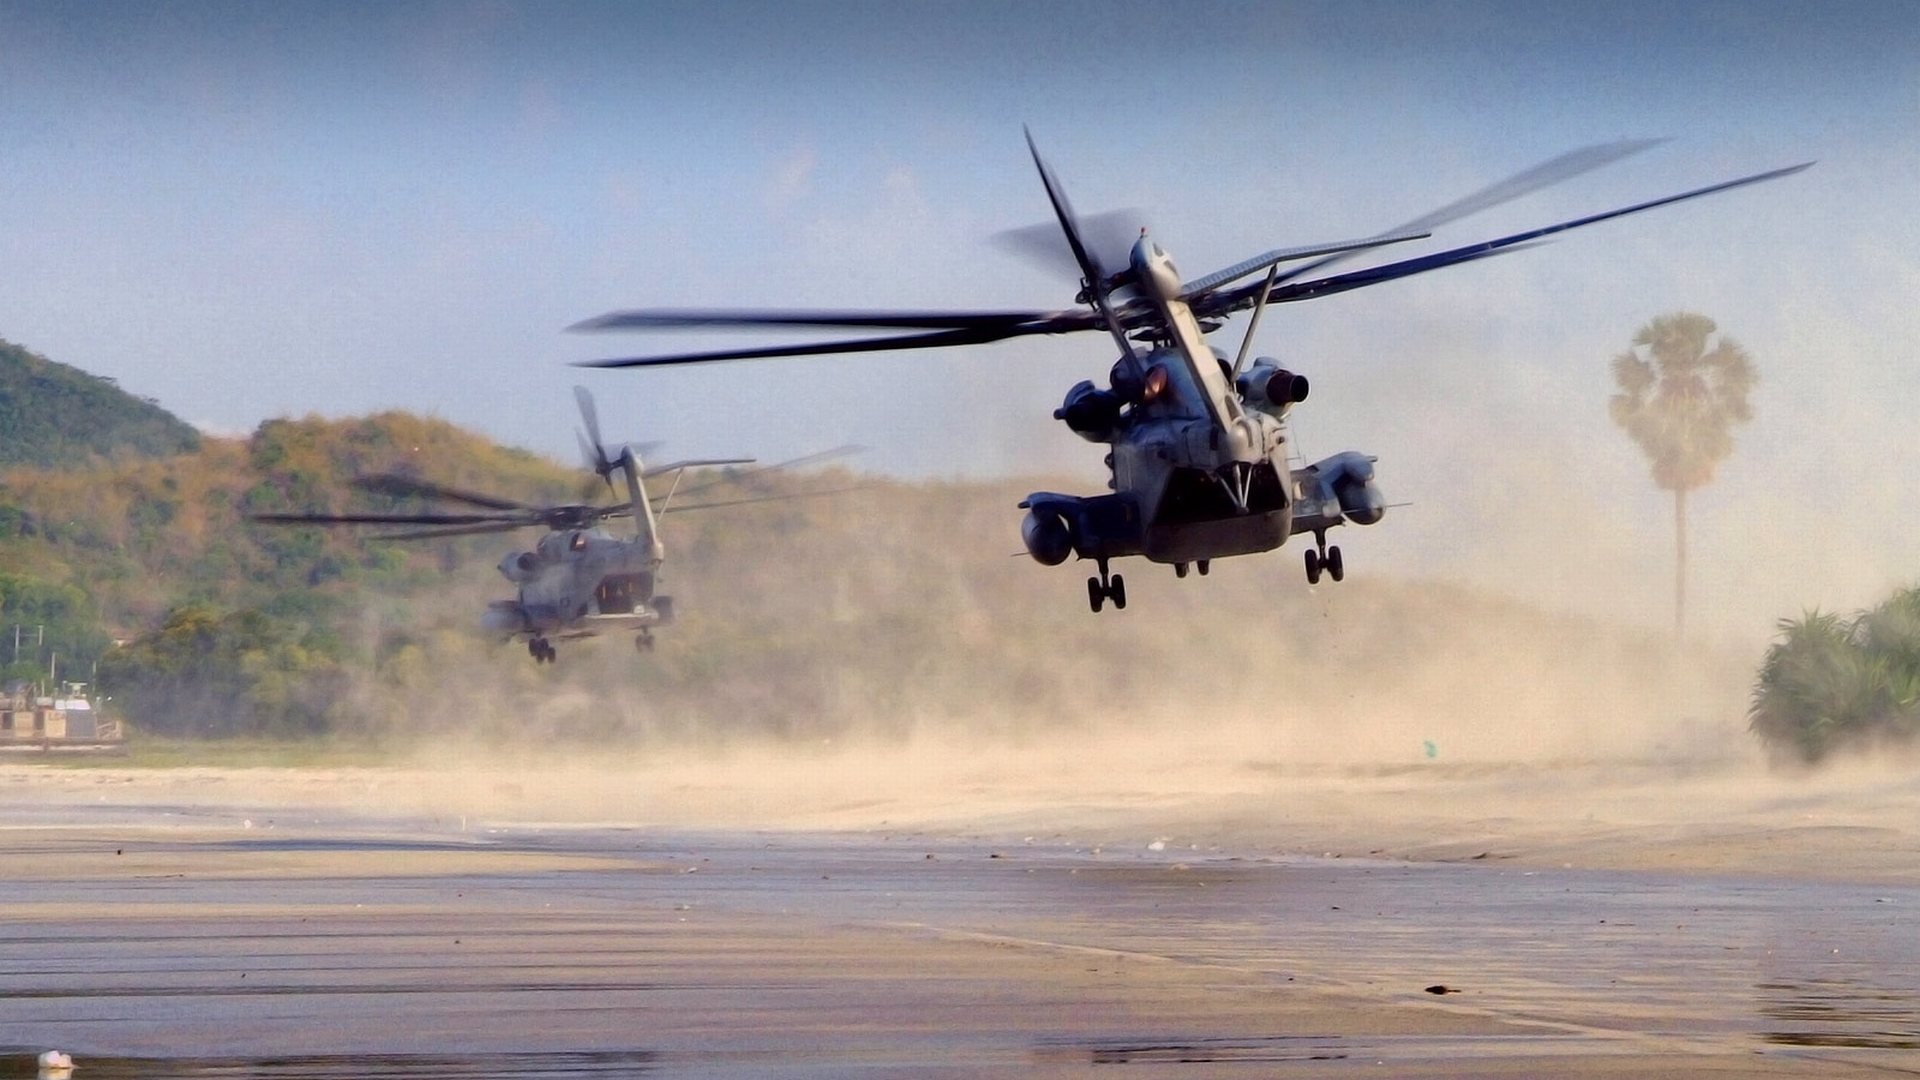 world war 1 helicopters with Military Helicopter Wallpaper on 8229 moreover 2337320 as well 10 Great Films Set Jungle together with 345710 furthermore 6089.